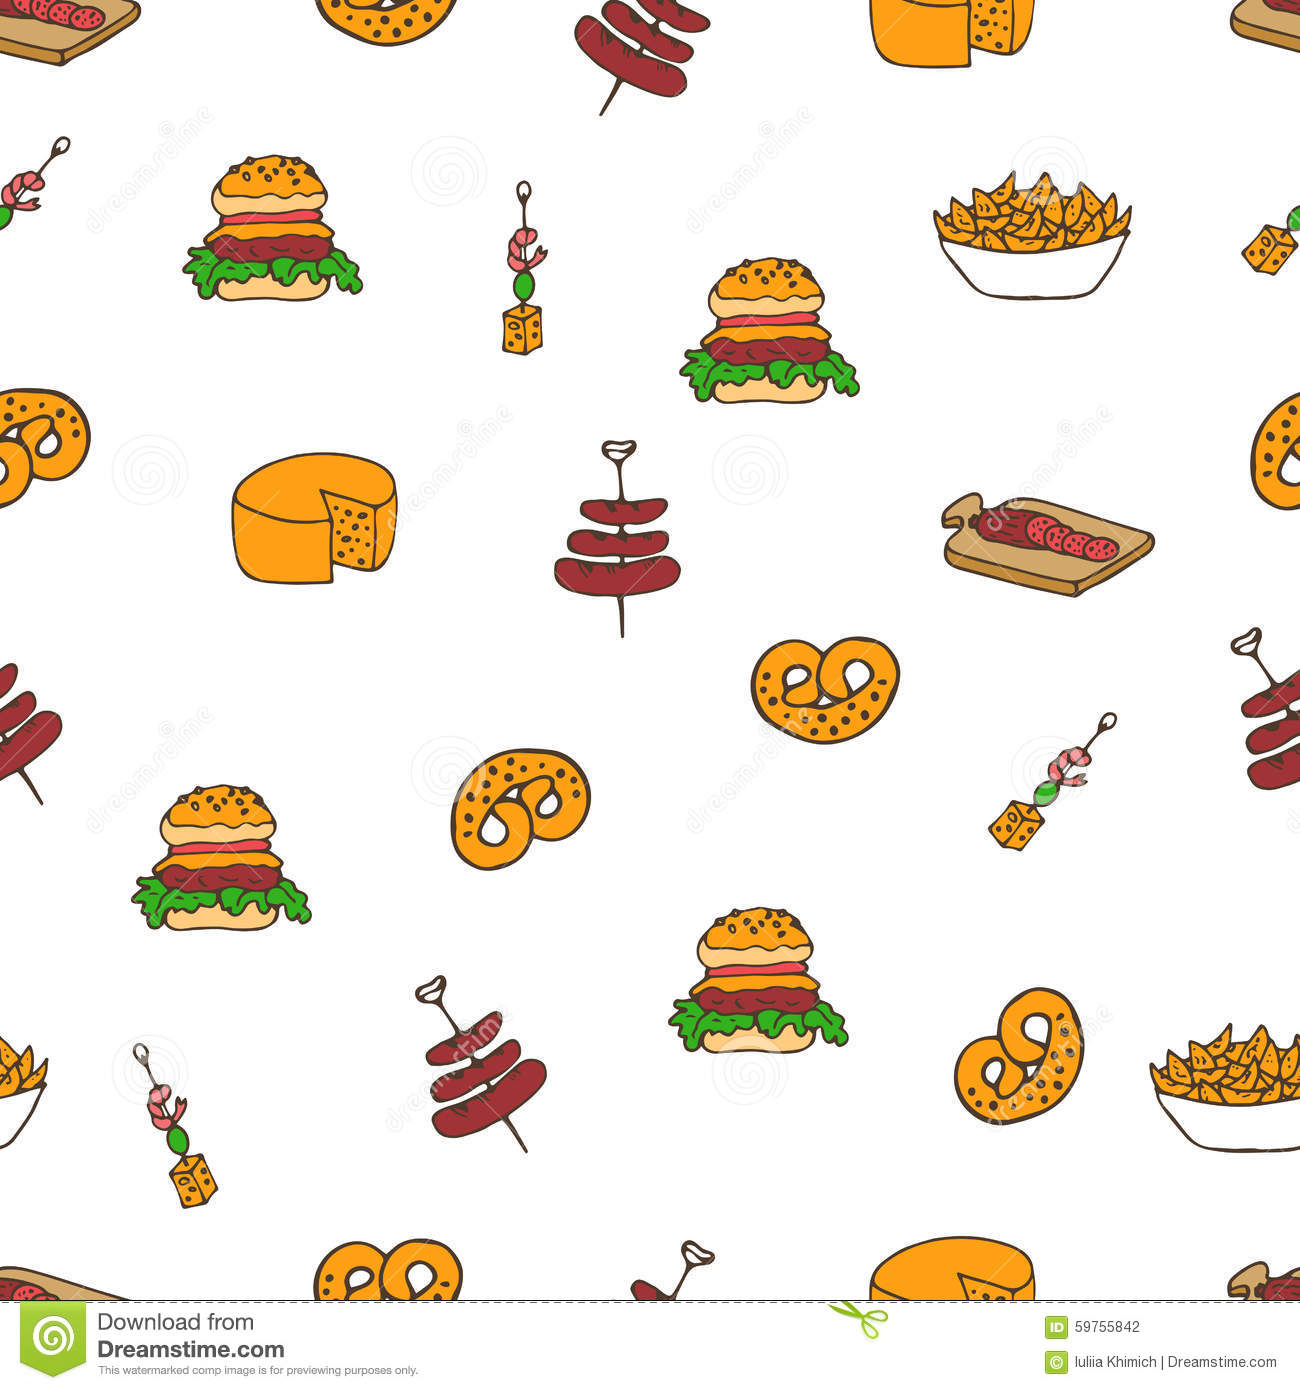 Cute Fruit Wallpaper Snacks Doodle Pattern Stock Vector Illustration Of Hand